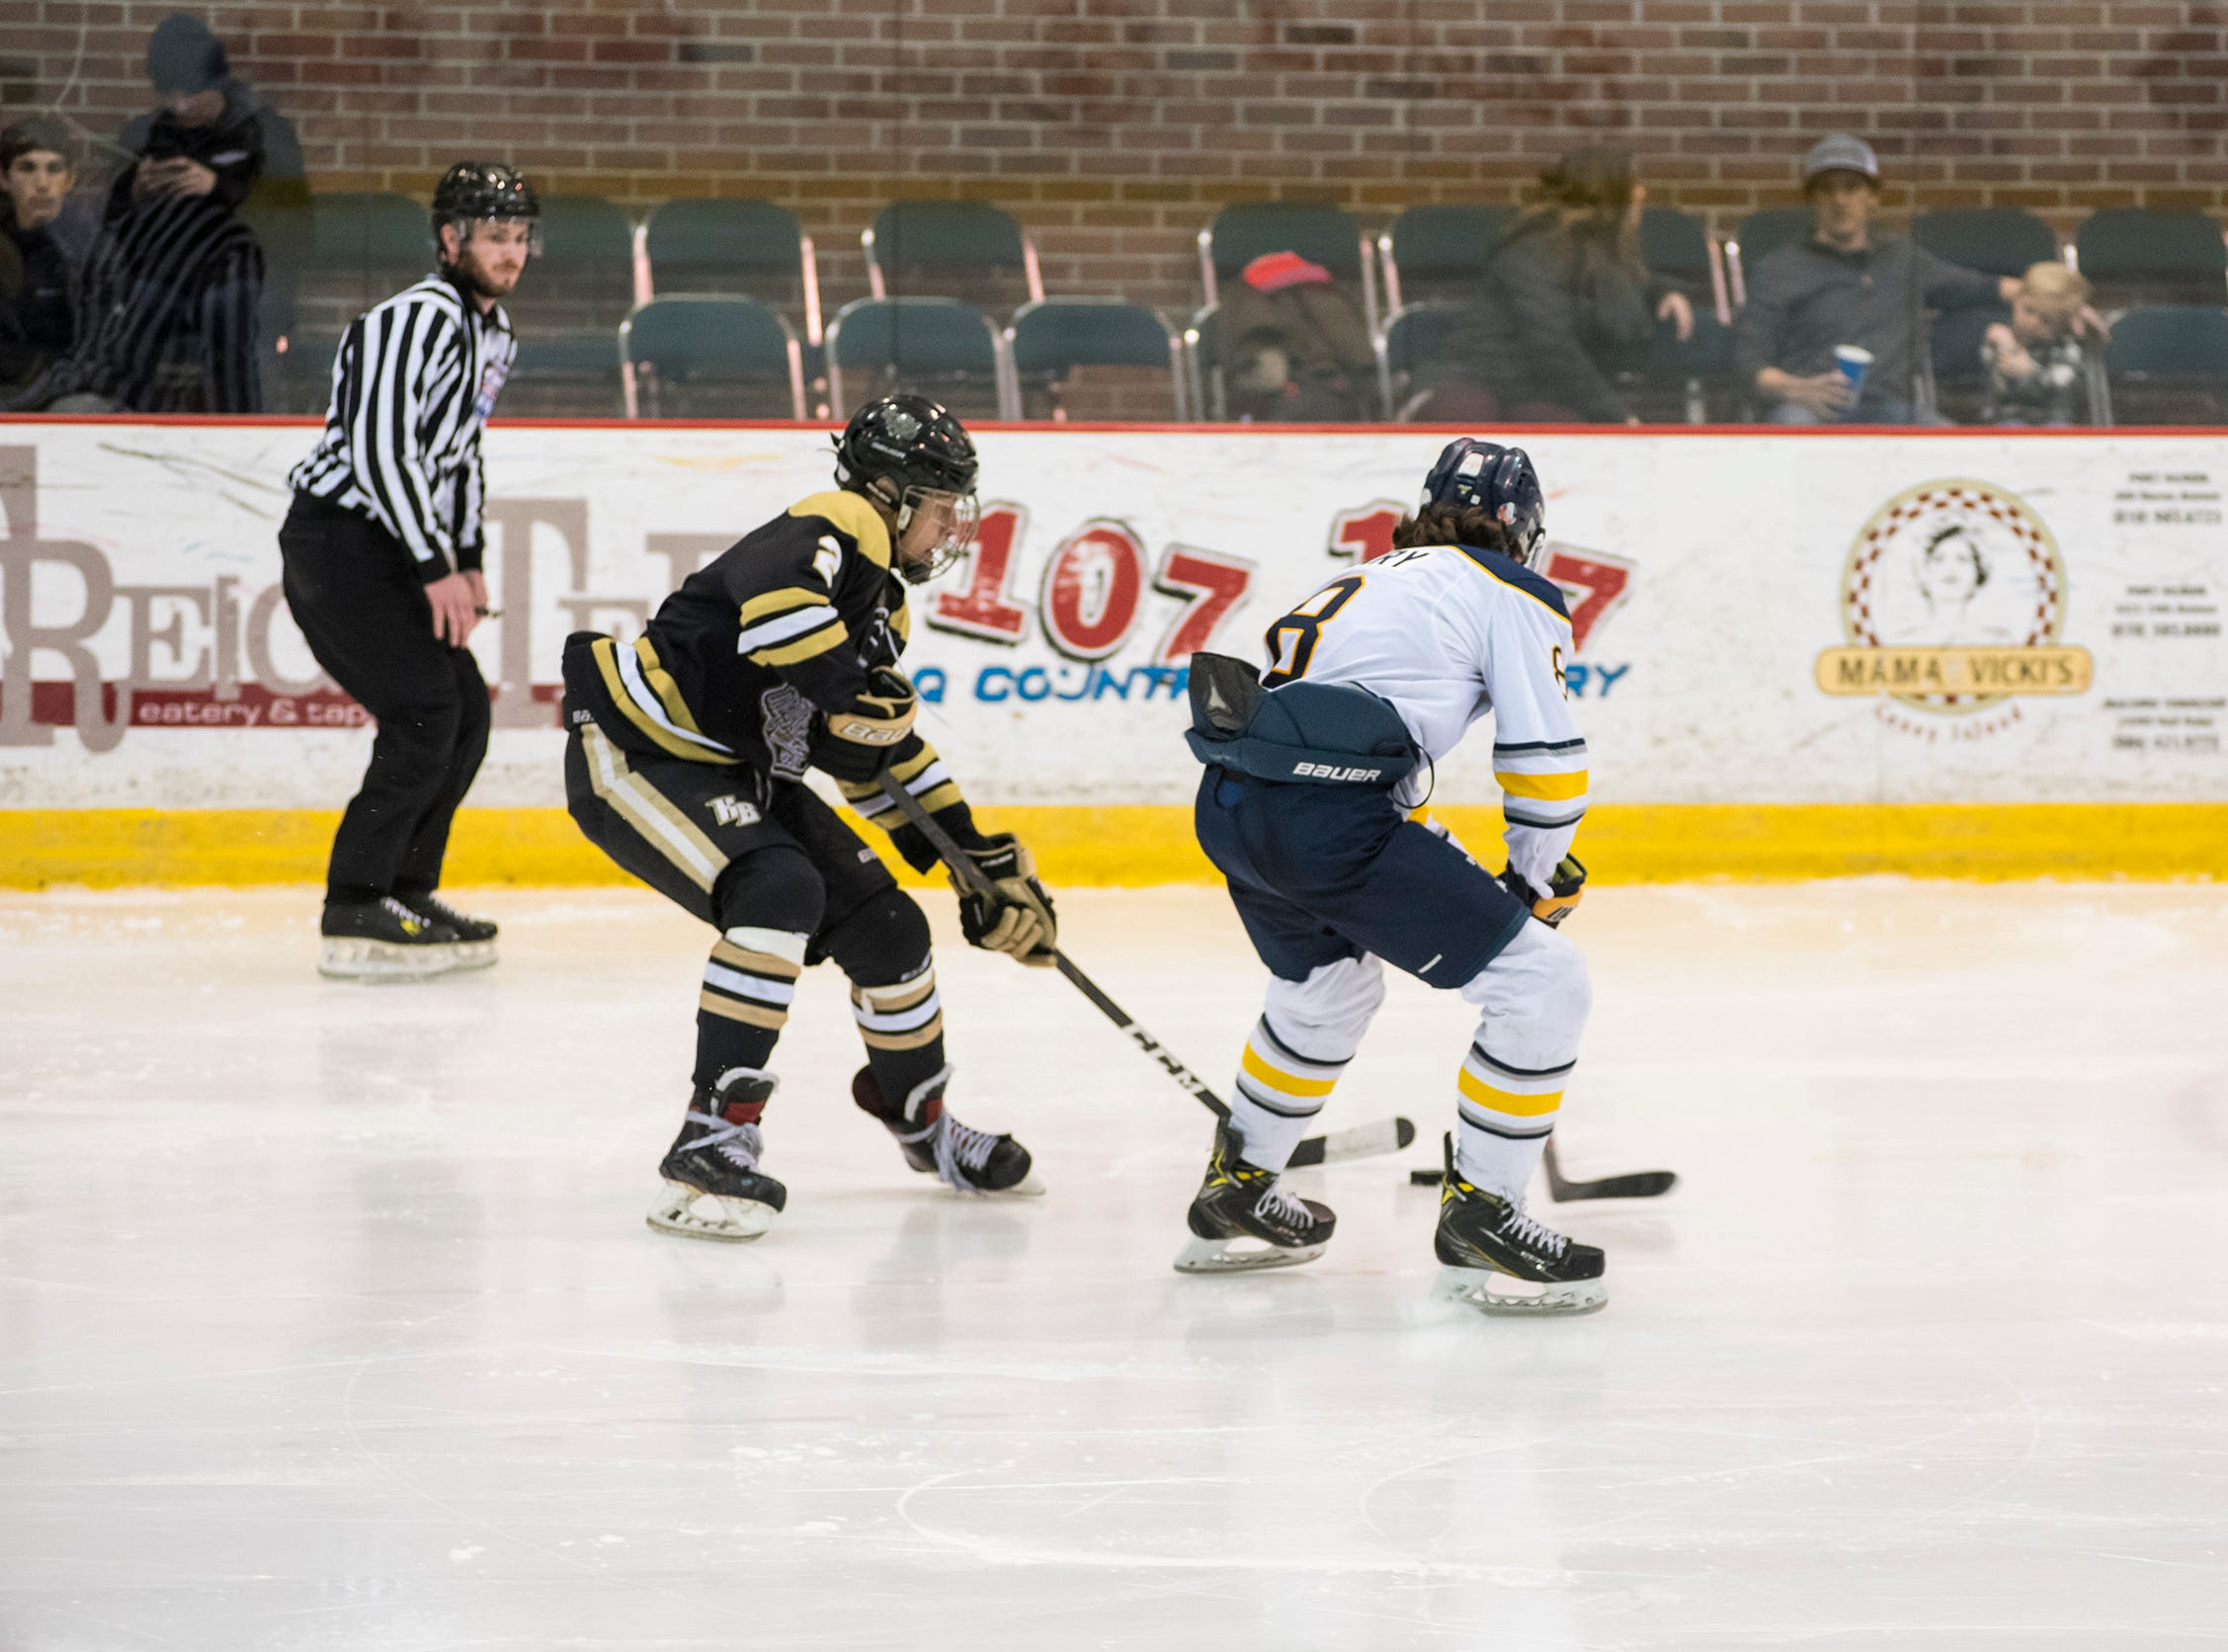 Detroit Honeybaked forward Rutger McGroarty (2) goes to steal the puck from Buffalo Jr. Sabres defenseman Patrick Geary during the Silver Stick Finals BAAA Championship match Sunday, Jan. 6, 2019 at McMorran Arena.